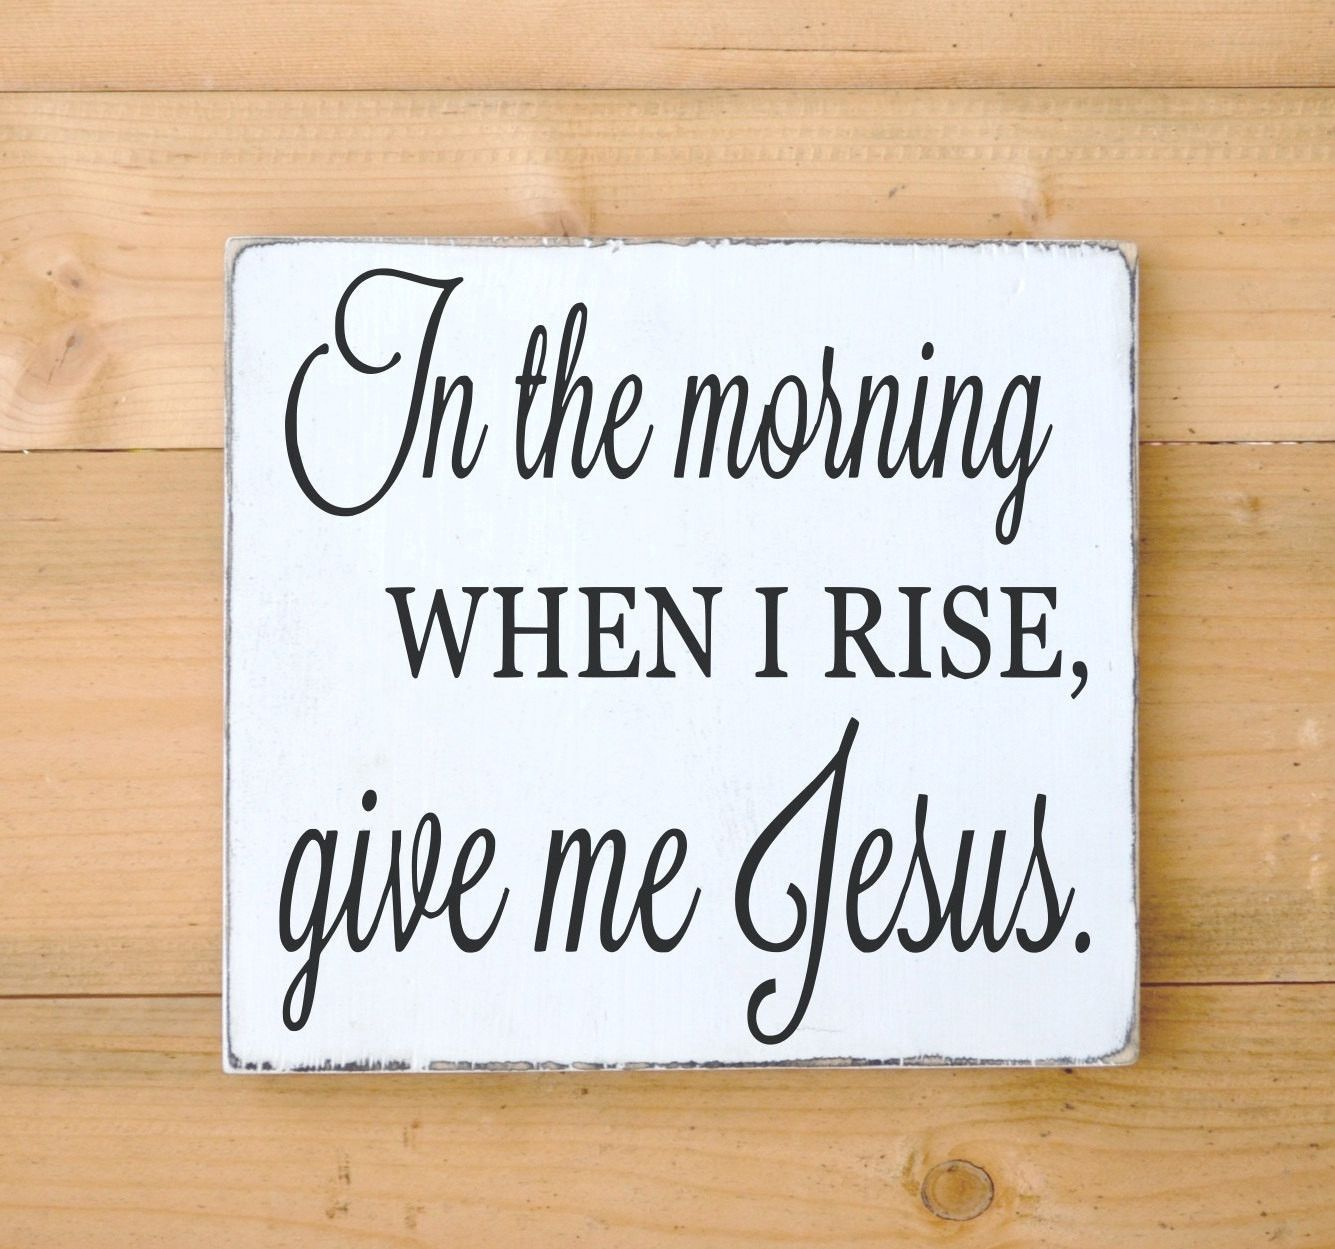 Christian kitchen decor - Christian Wall Art Wood Sign In The Morning When I Rise Give Me Jesus Religious Lyrics